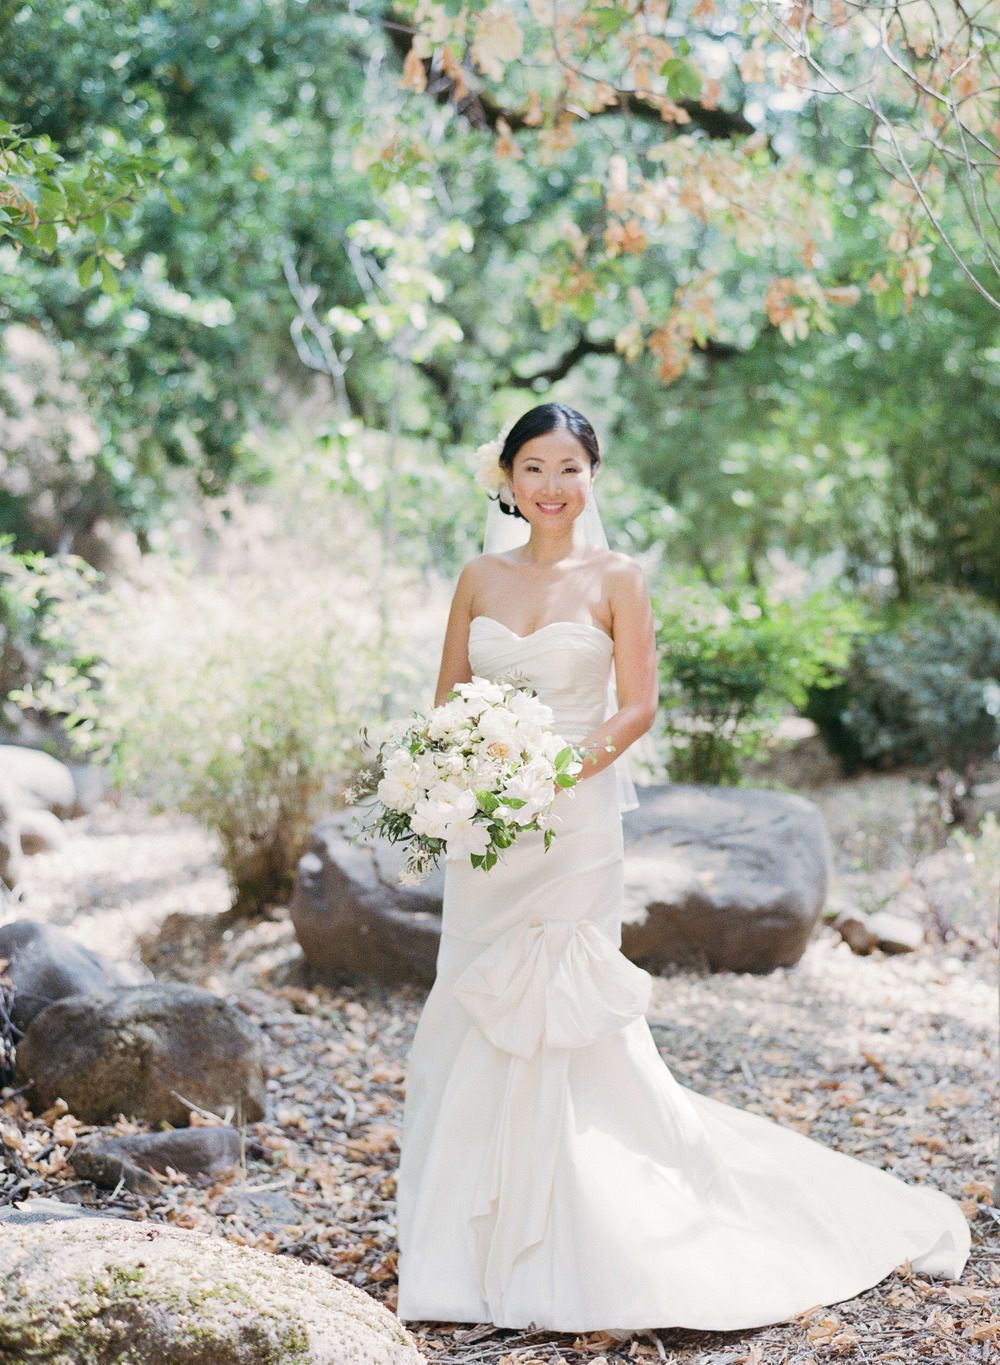 Di poses in a romantic woodsy setting, wearing an Oscar de la Renta gown; photo by Sylvie Gil